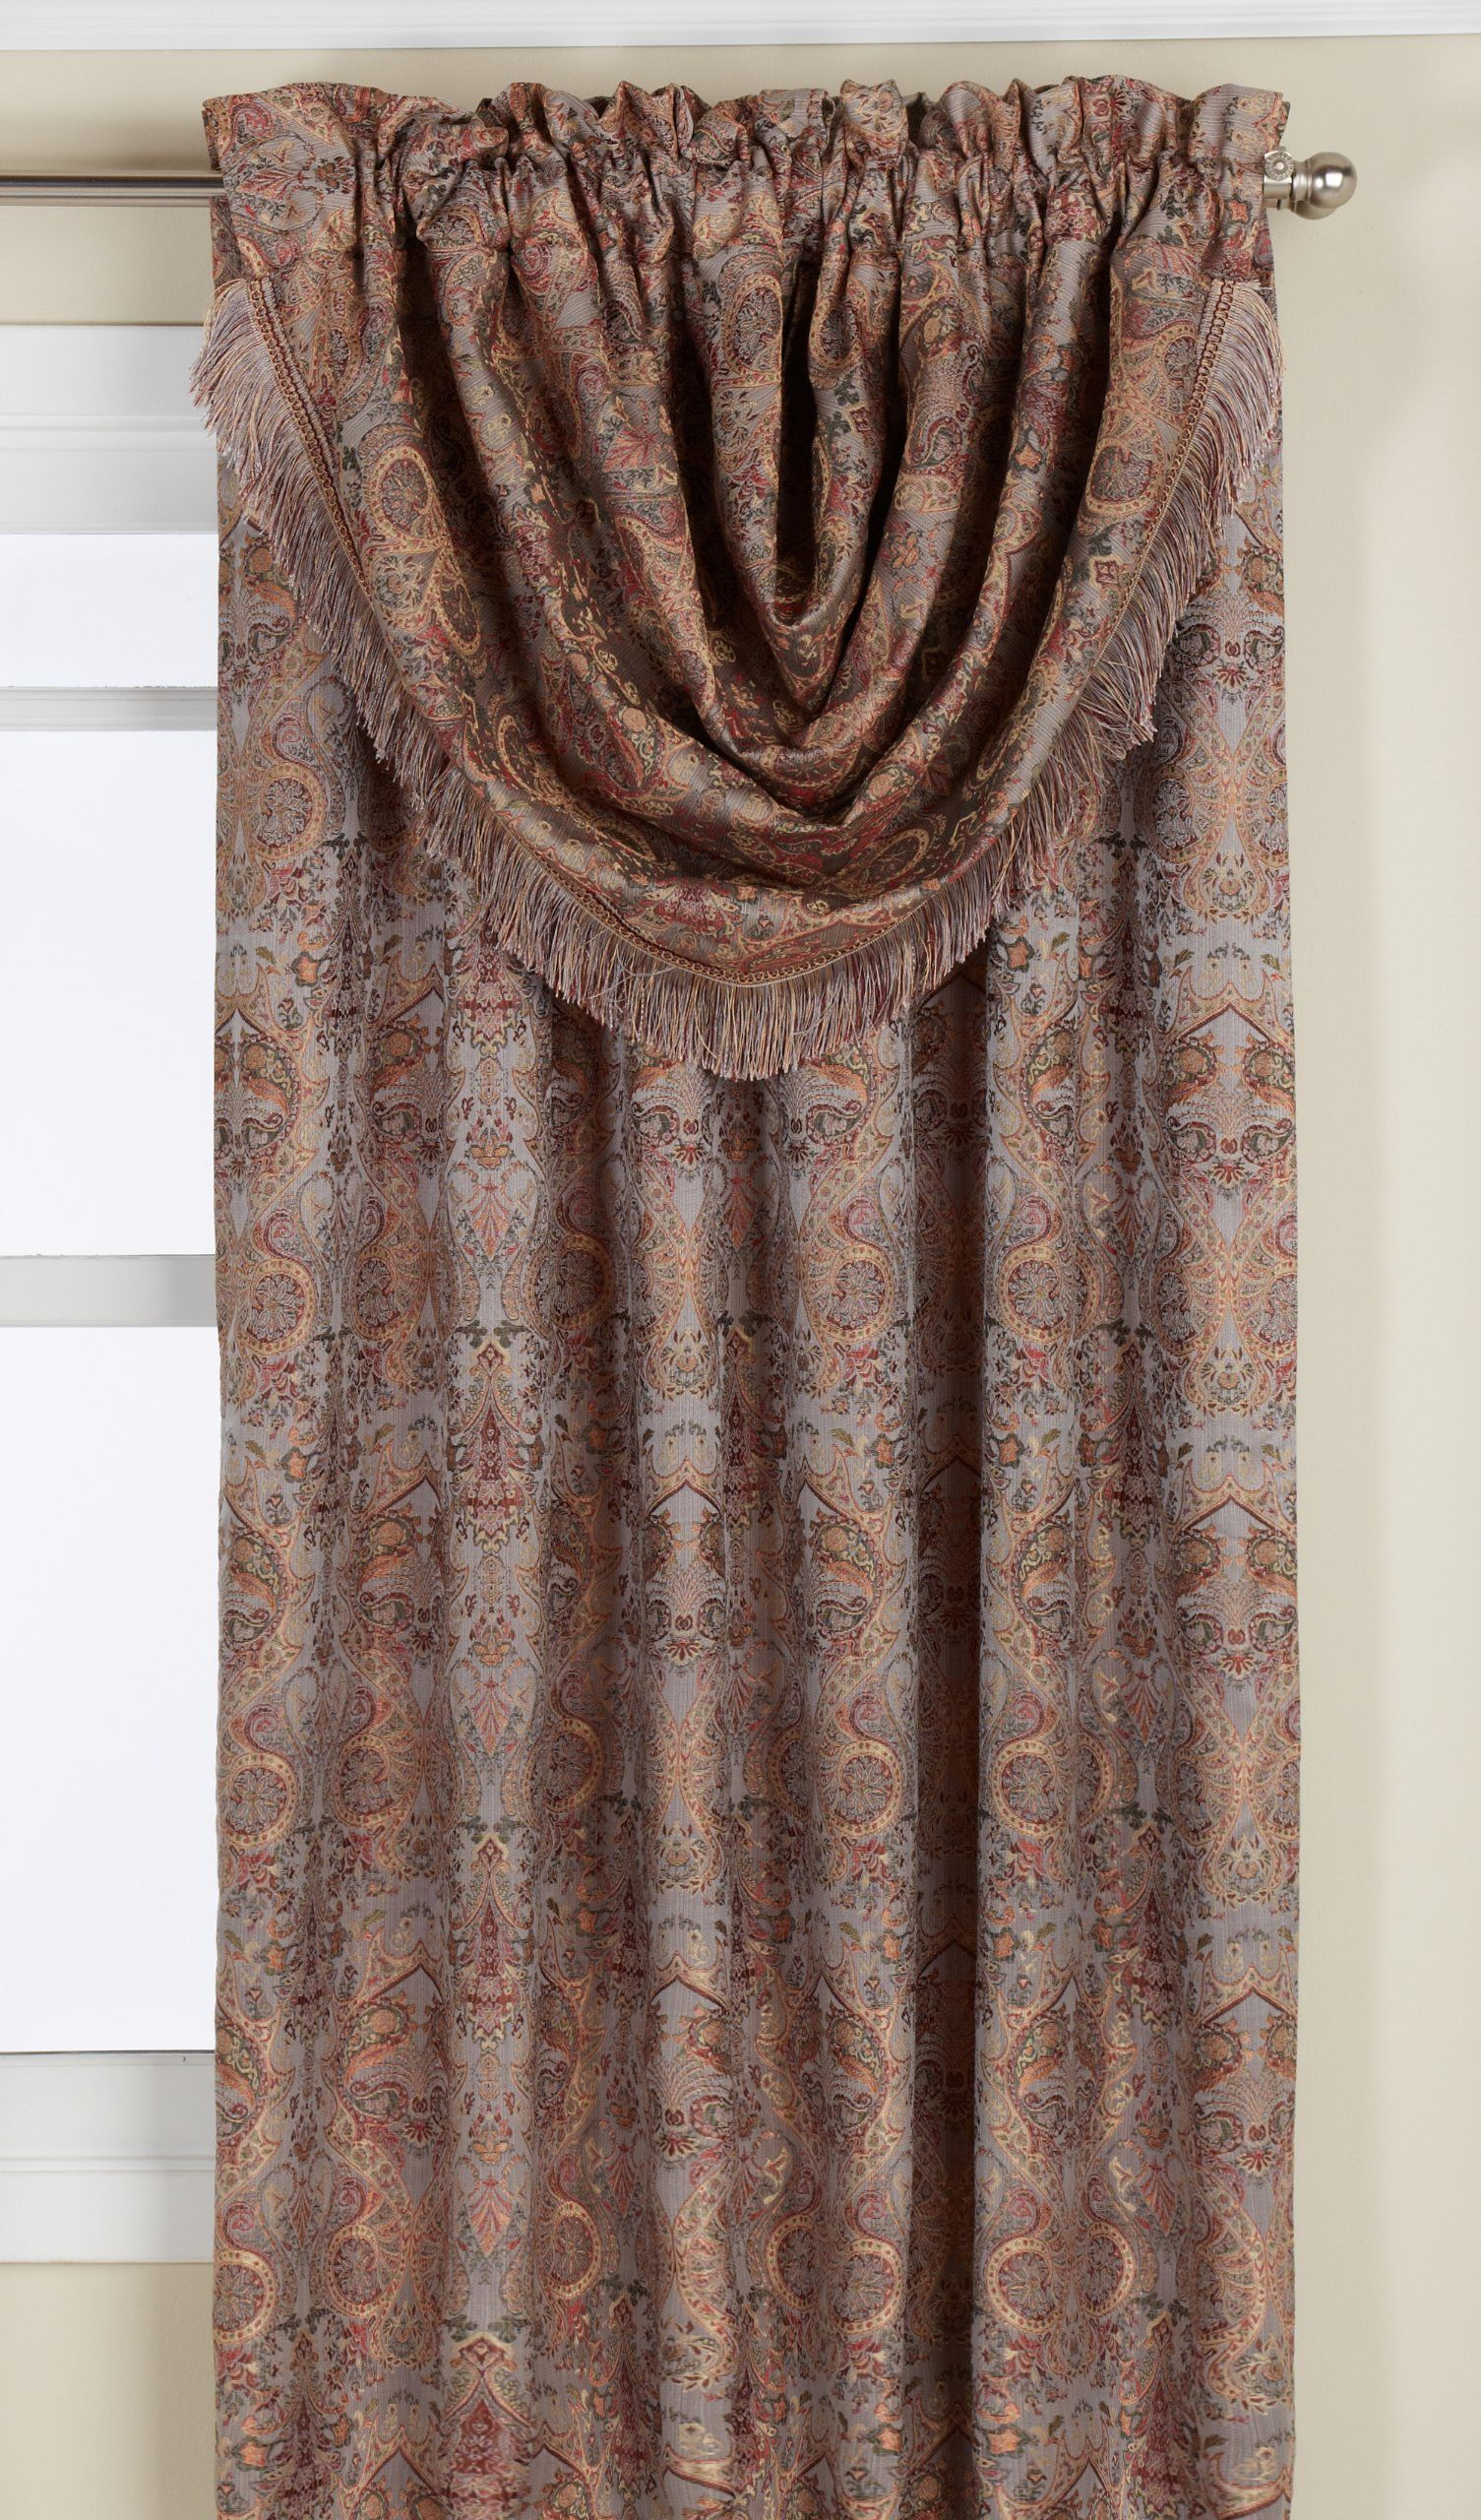 Lorraine Home Fashions Hermitage Window Curtain Panel 54 By 84Inch